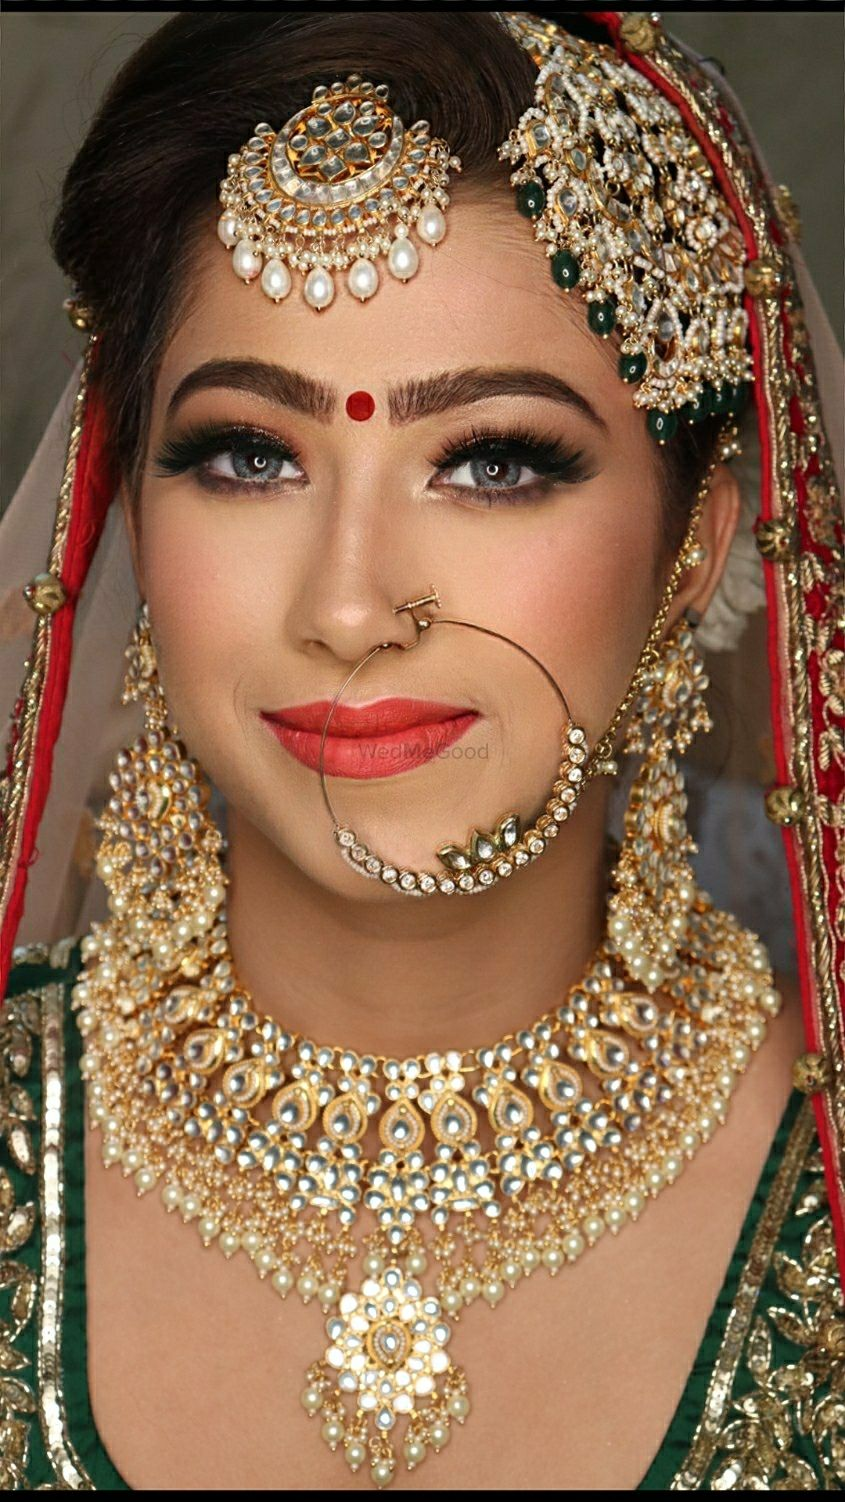 Photo By Simran Khanna Makeovers - Bridal Makeup